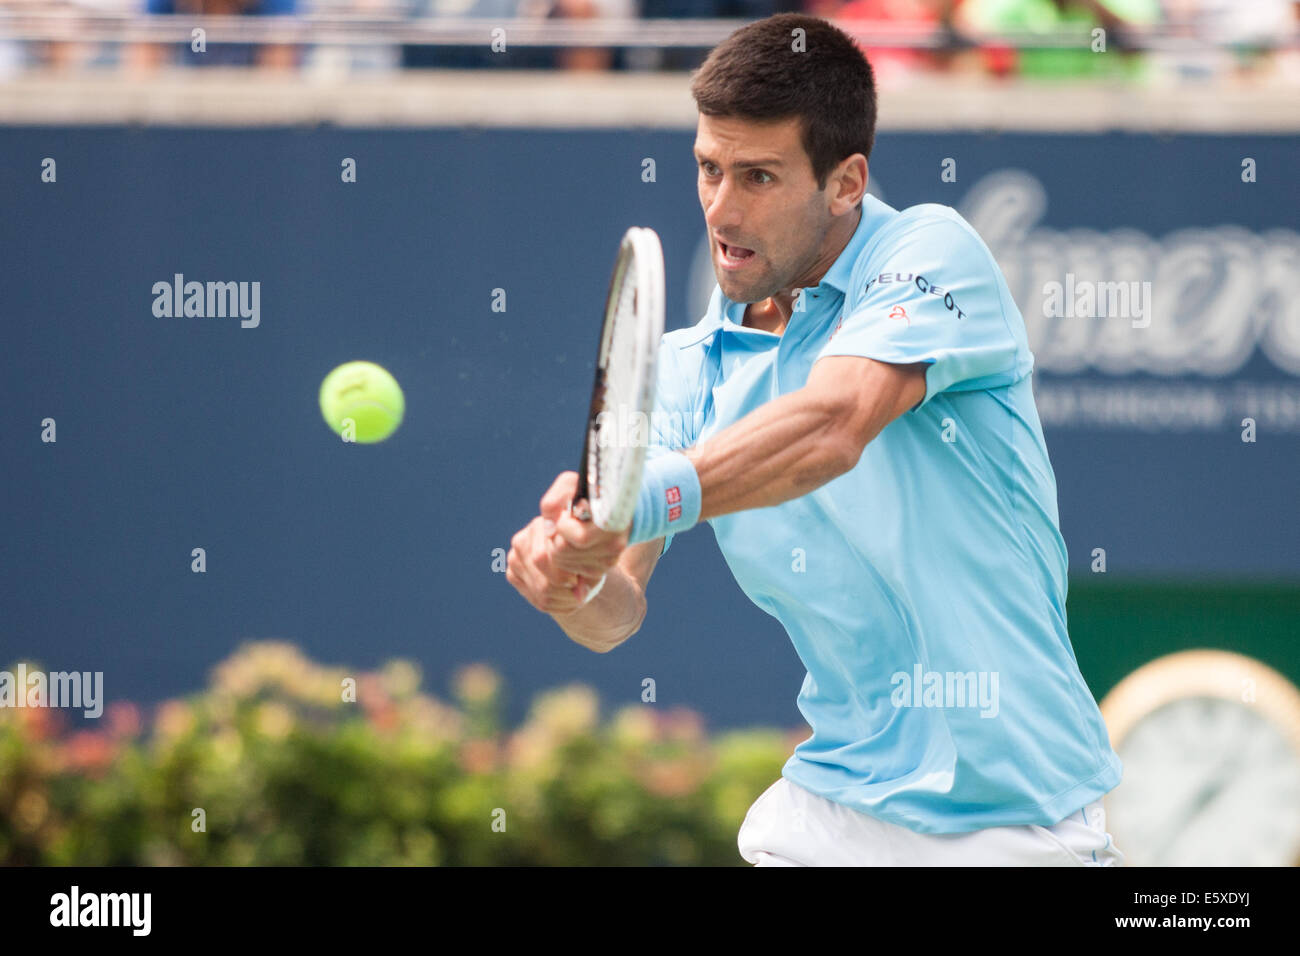 Toronto, Canada. 07th Aug, 2014. Novak Djokovic returns the ball during his match against Jo-Wilfried Tsonga at - Stock Image